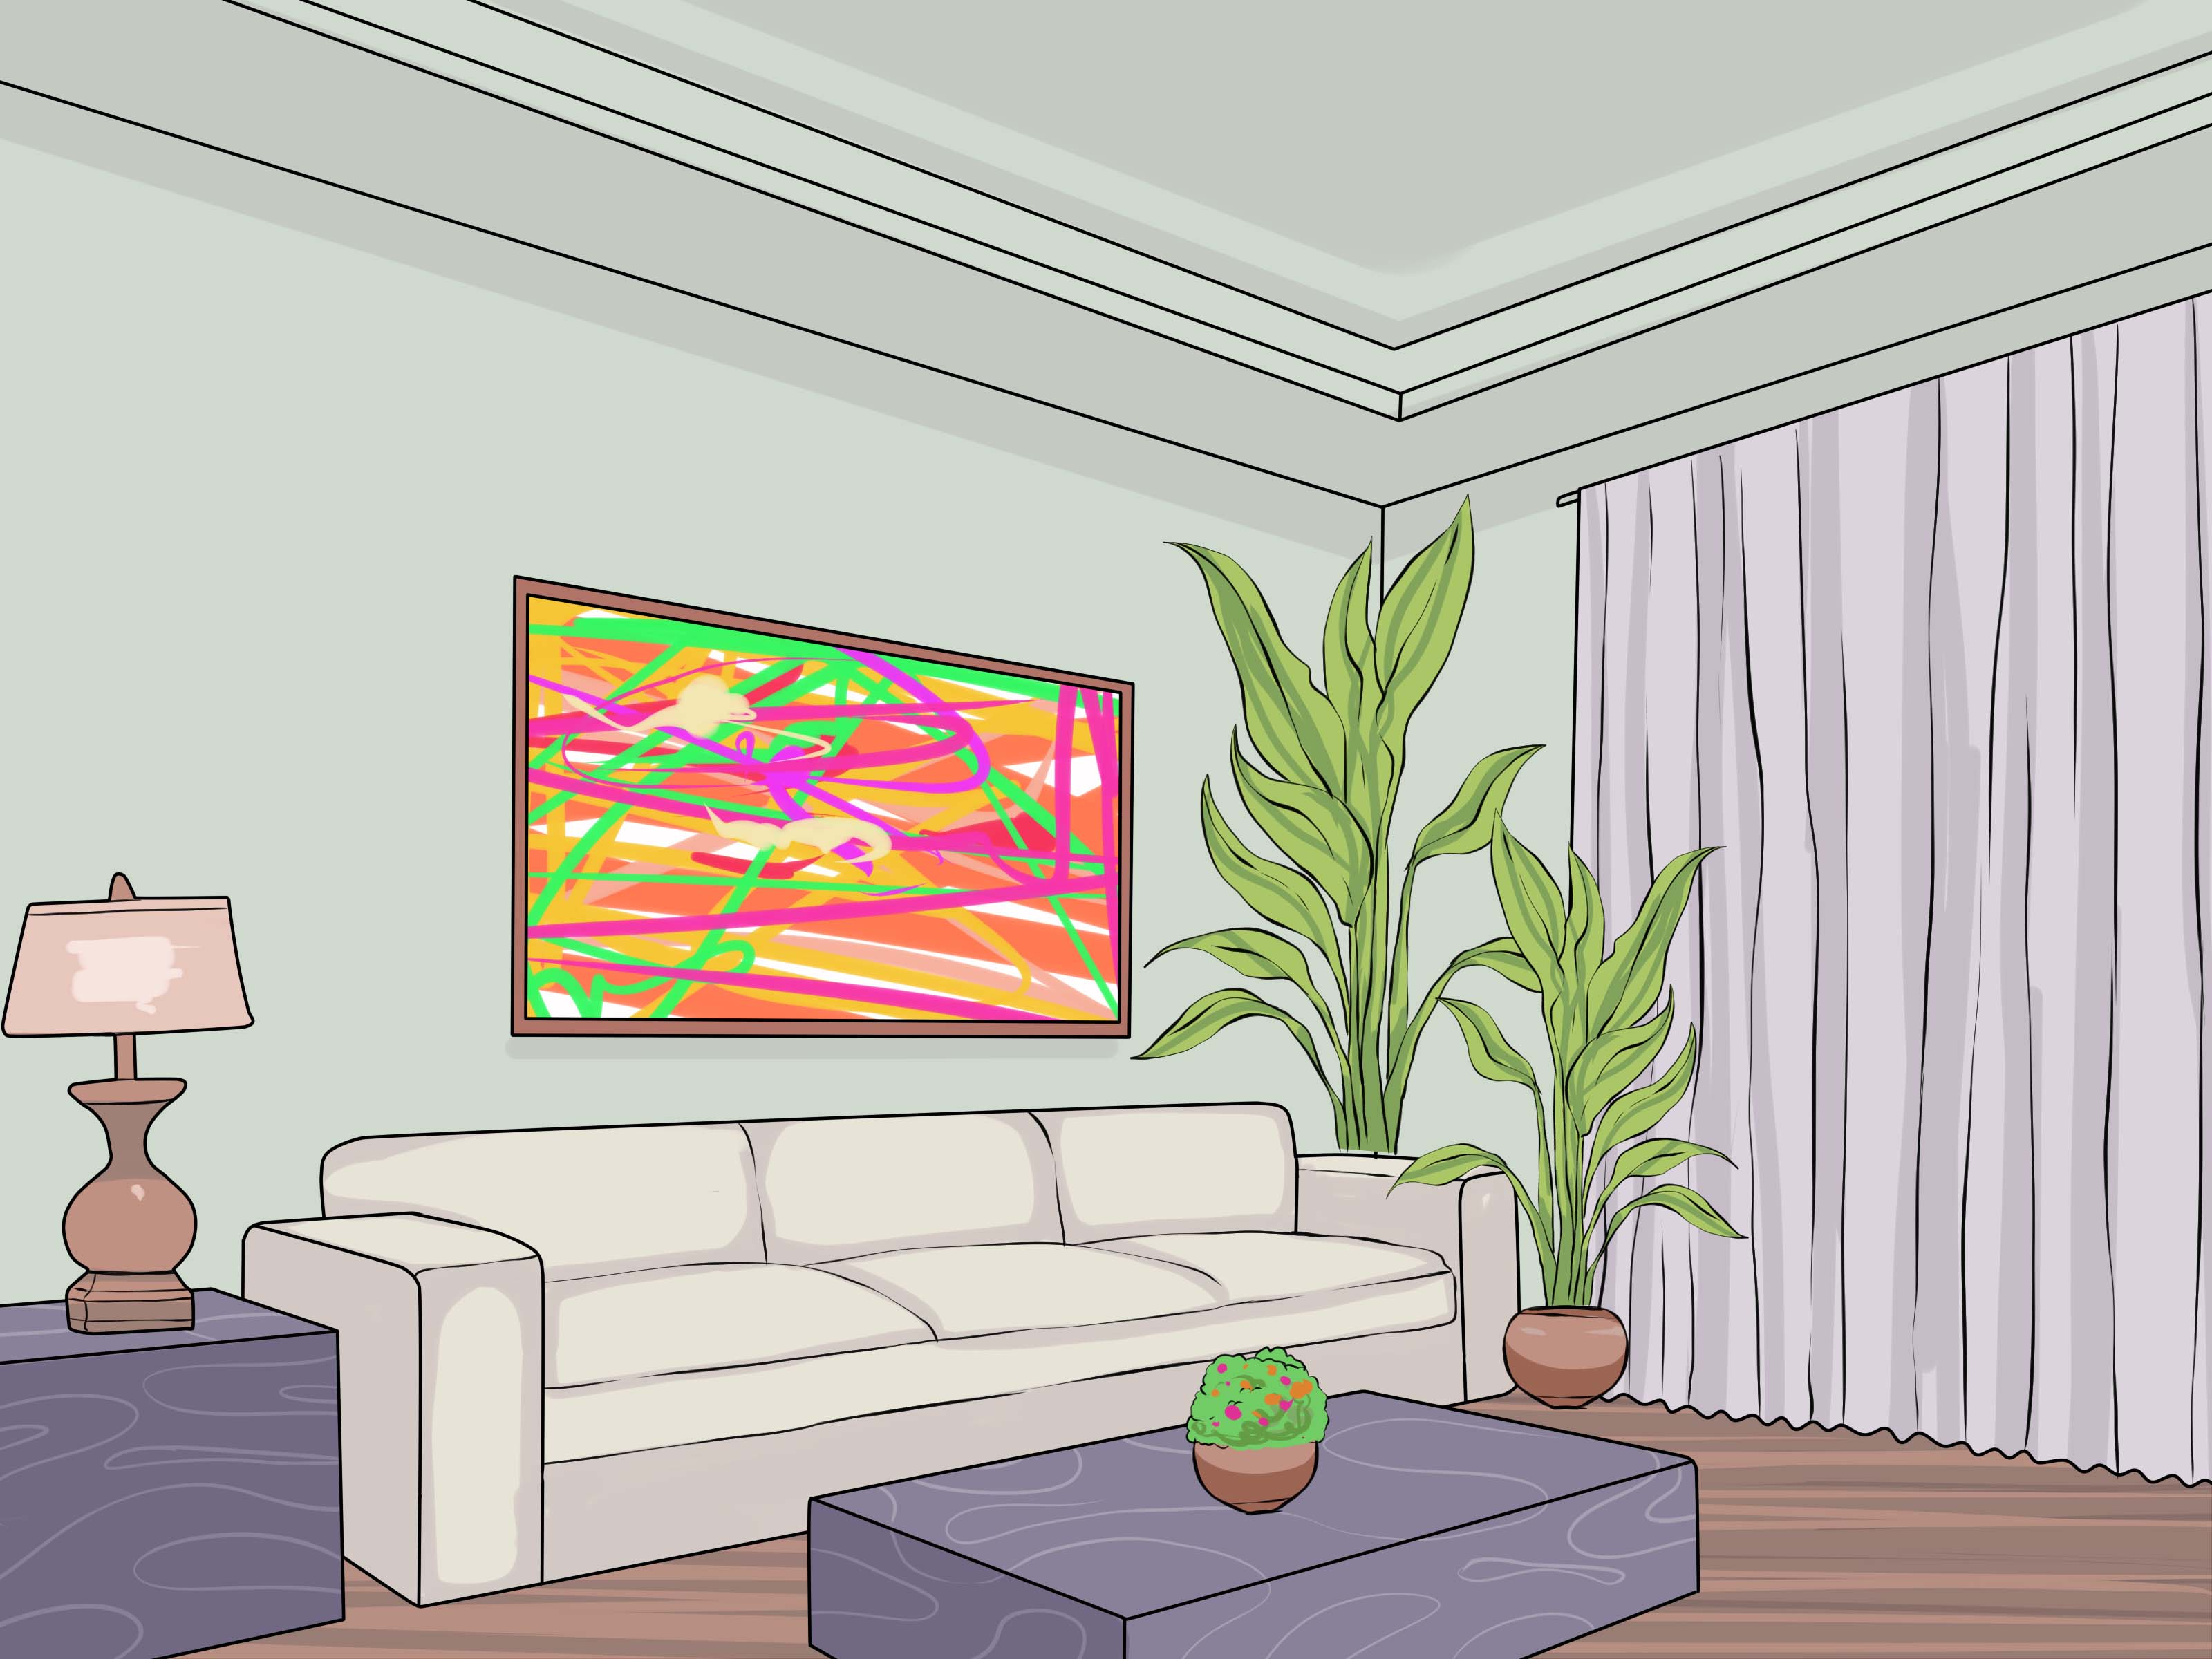 How To Design A Living Room: 11 Steps (with Pictures